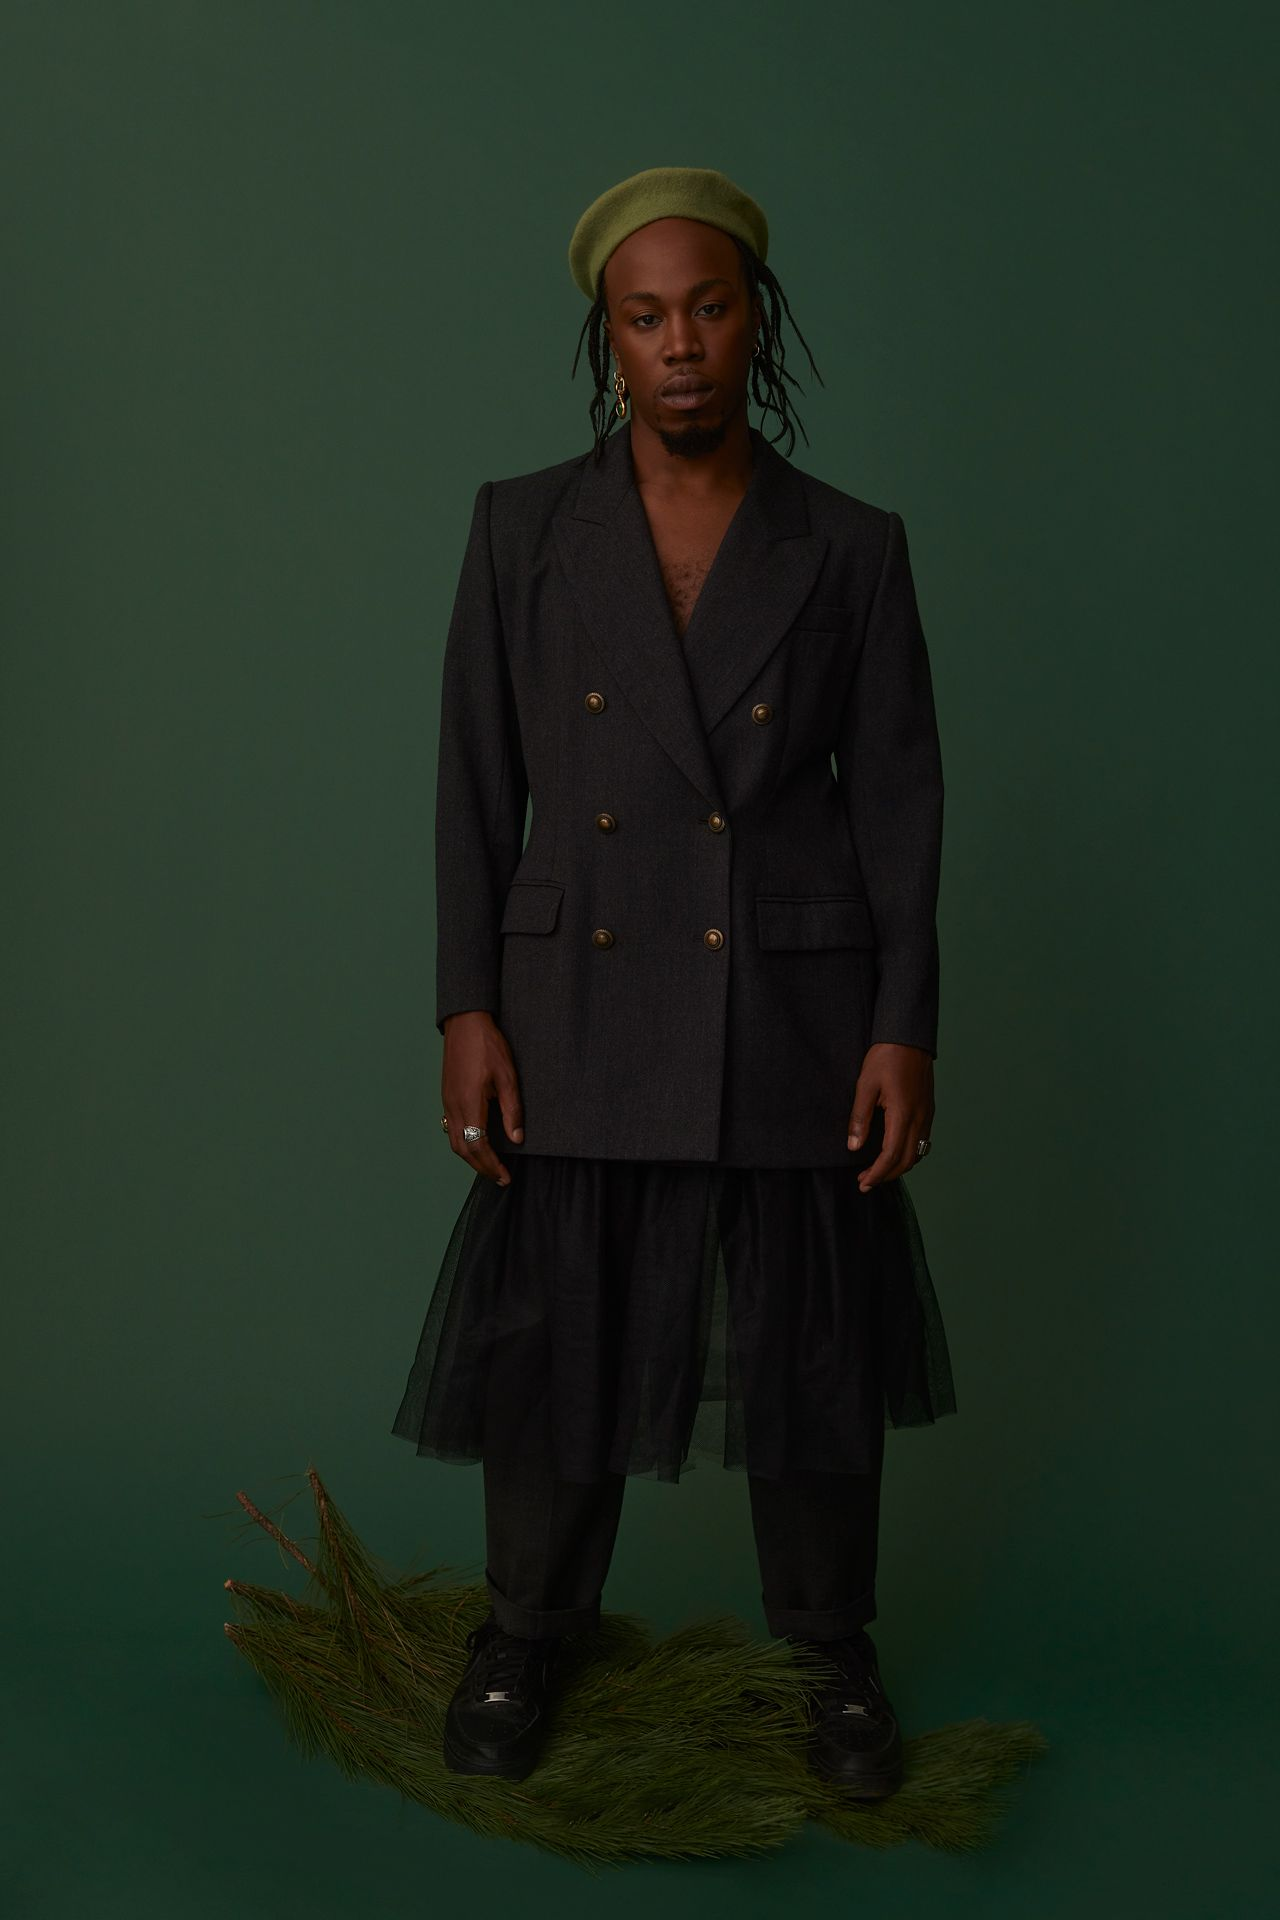 black male model standing on pine branches wearing light green beret black suit jacket black skirt and black shoes looking at camera on dark green background photographed by Kelly Jacob for LEV